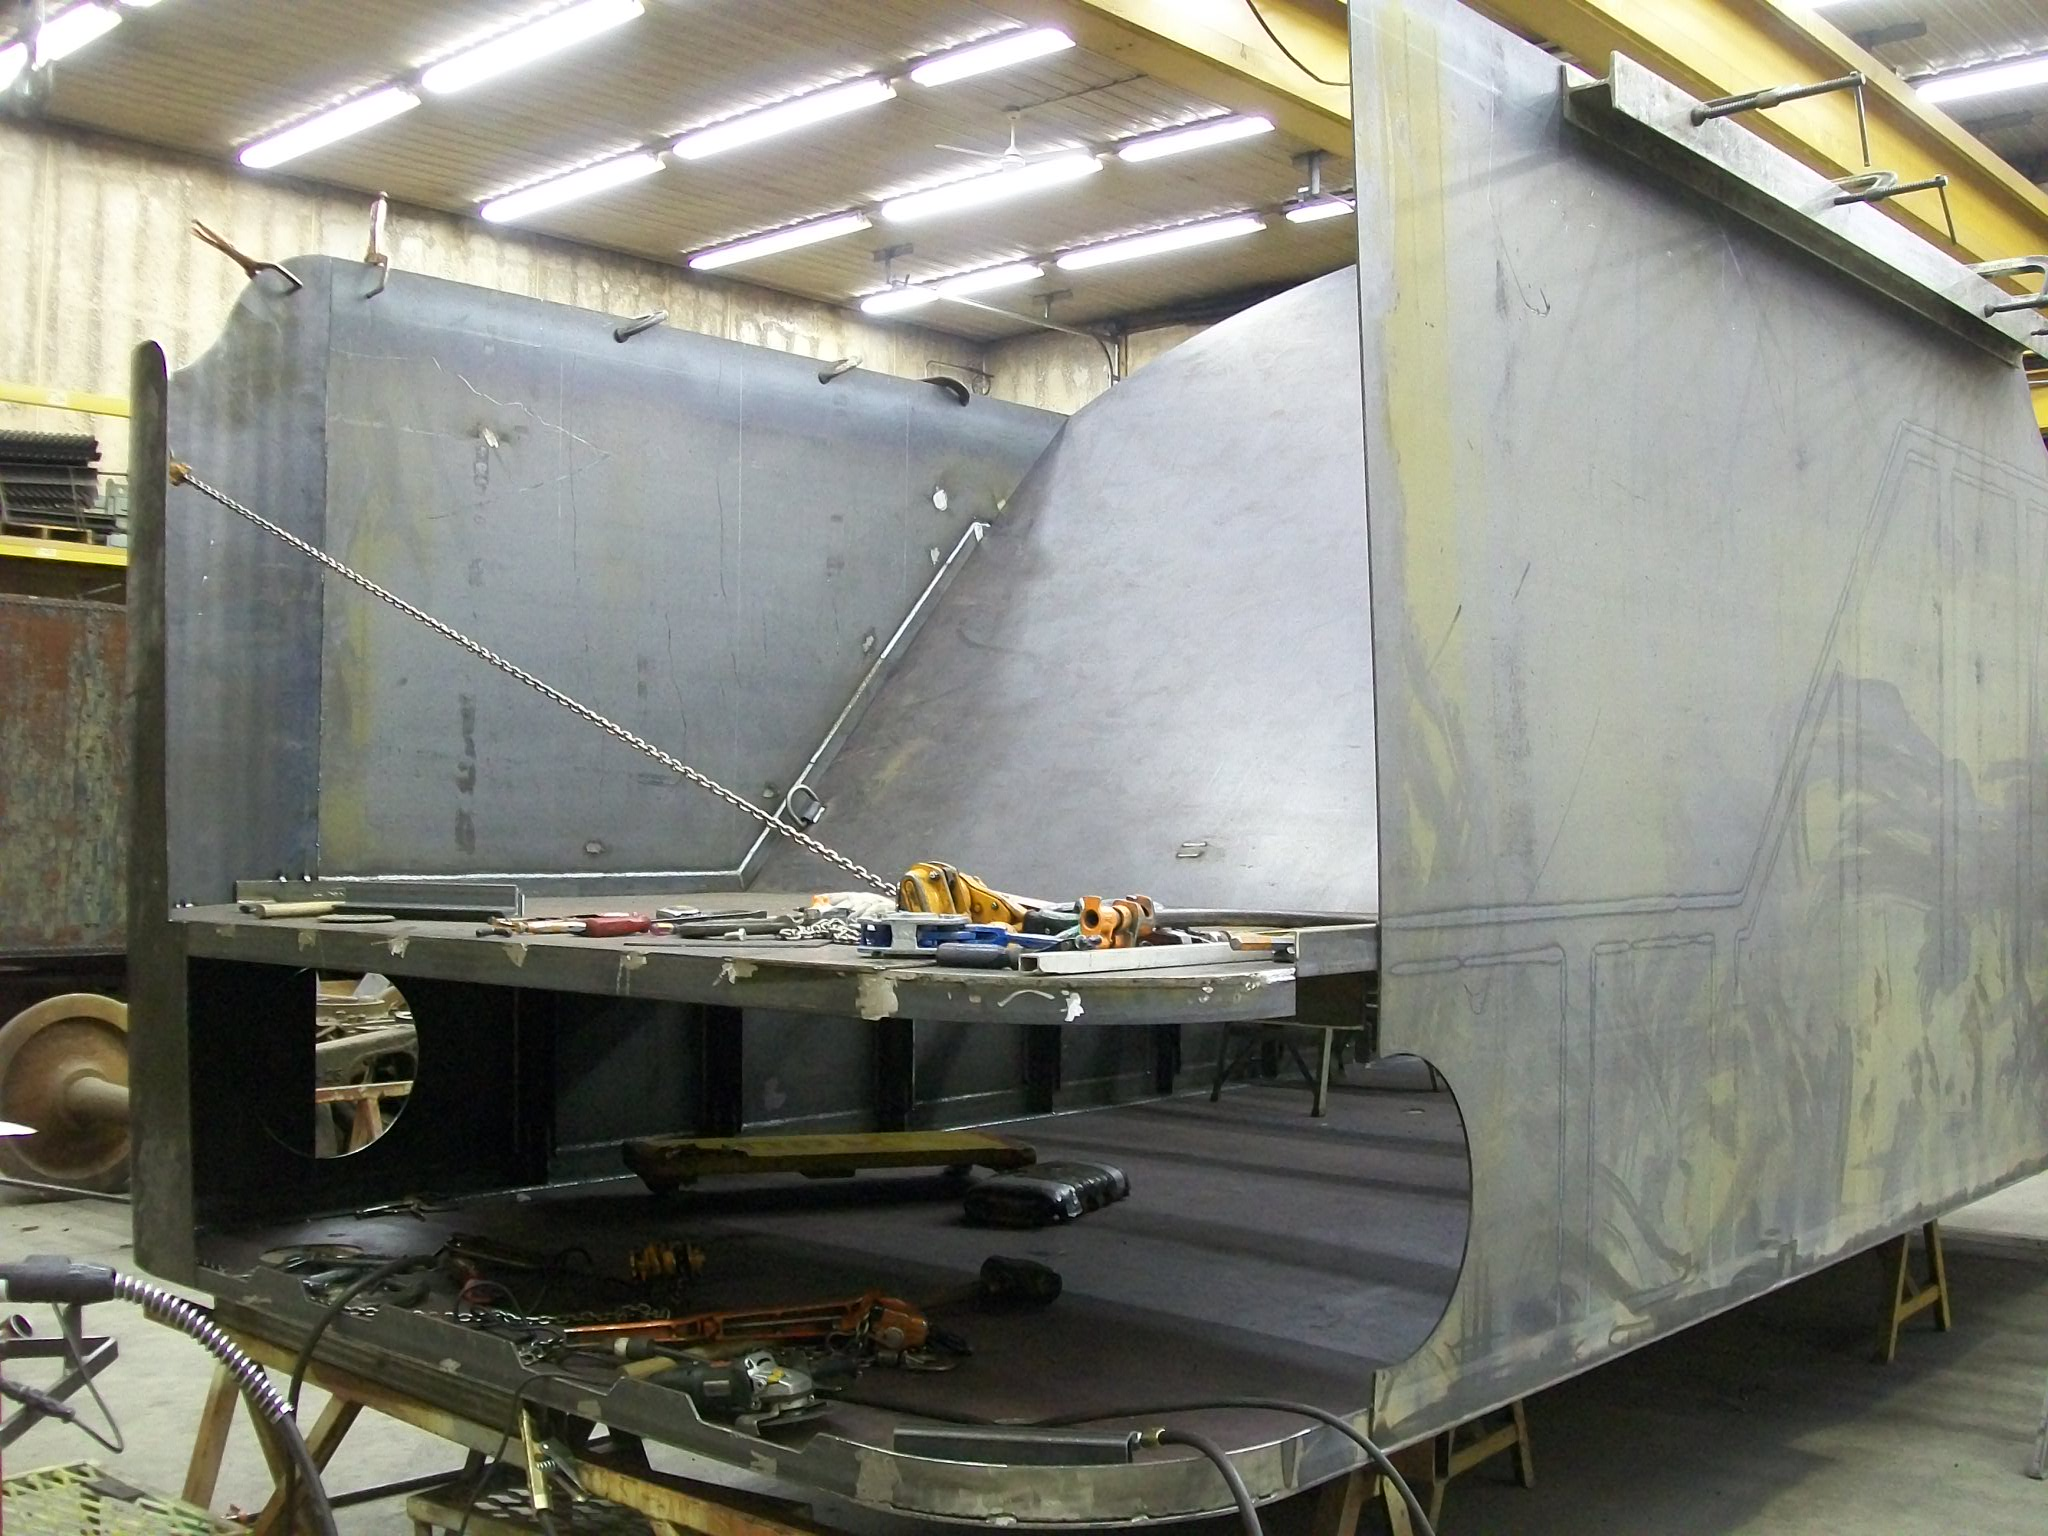 New C&NW 1385 tender tank under construction at DRM Industries. February 28, 2012. Photo by DRM Industries